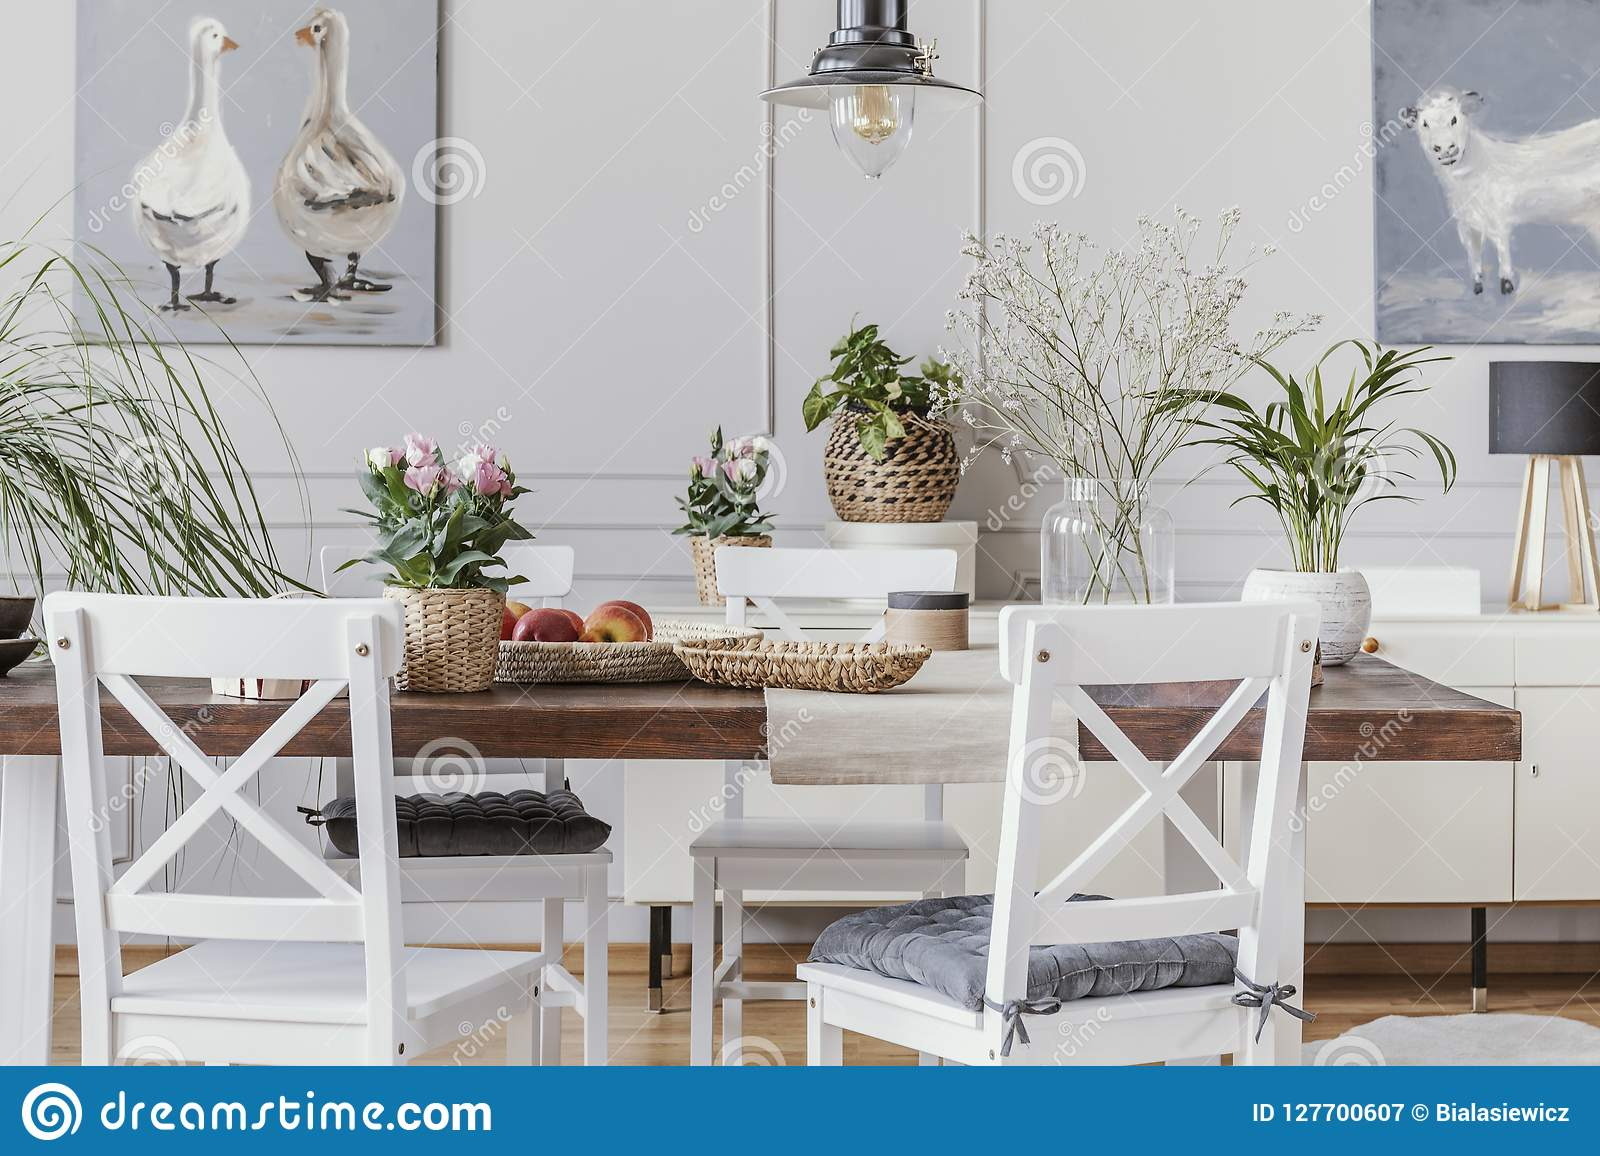 White dining room interior with posters and chairs at wooden table with flowers. Real photo